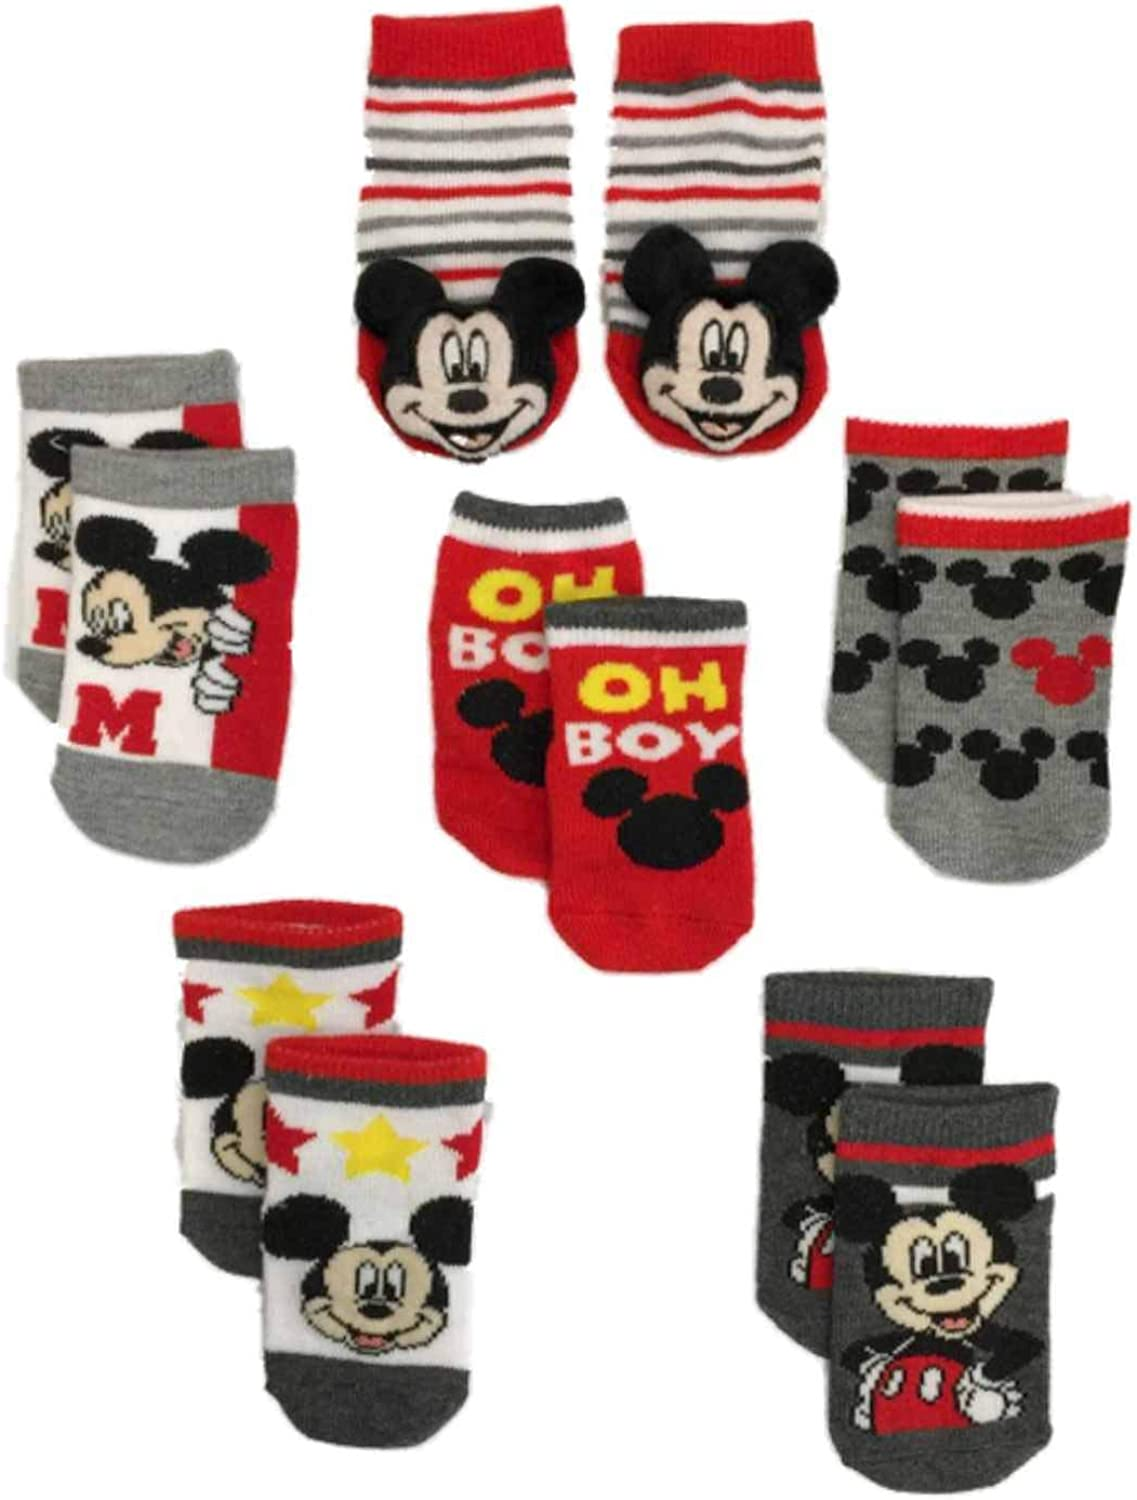 Mickey Mouse baby-boys 6 Pack Quarter Socks Socks